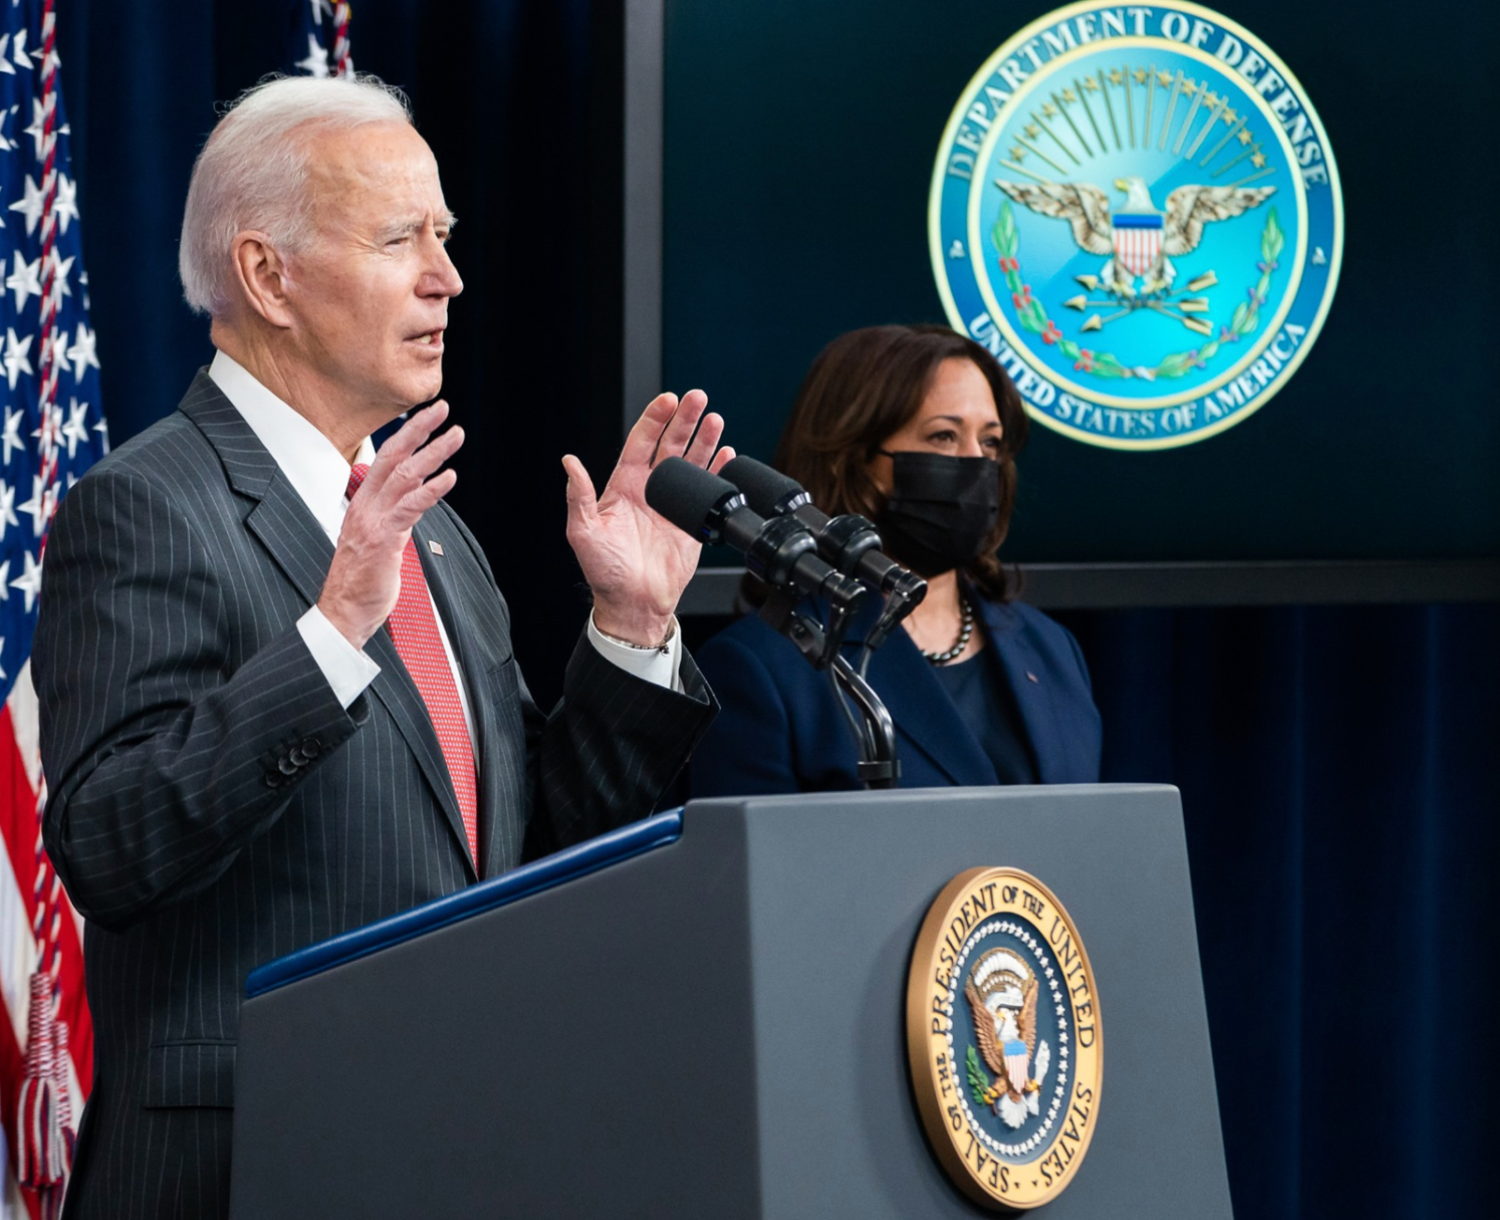 White House Unveils Expansive Immigration Agenda